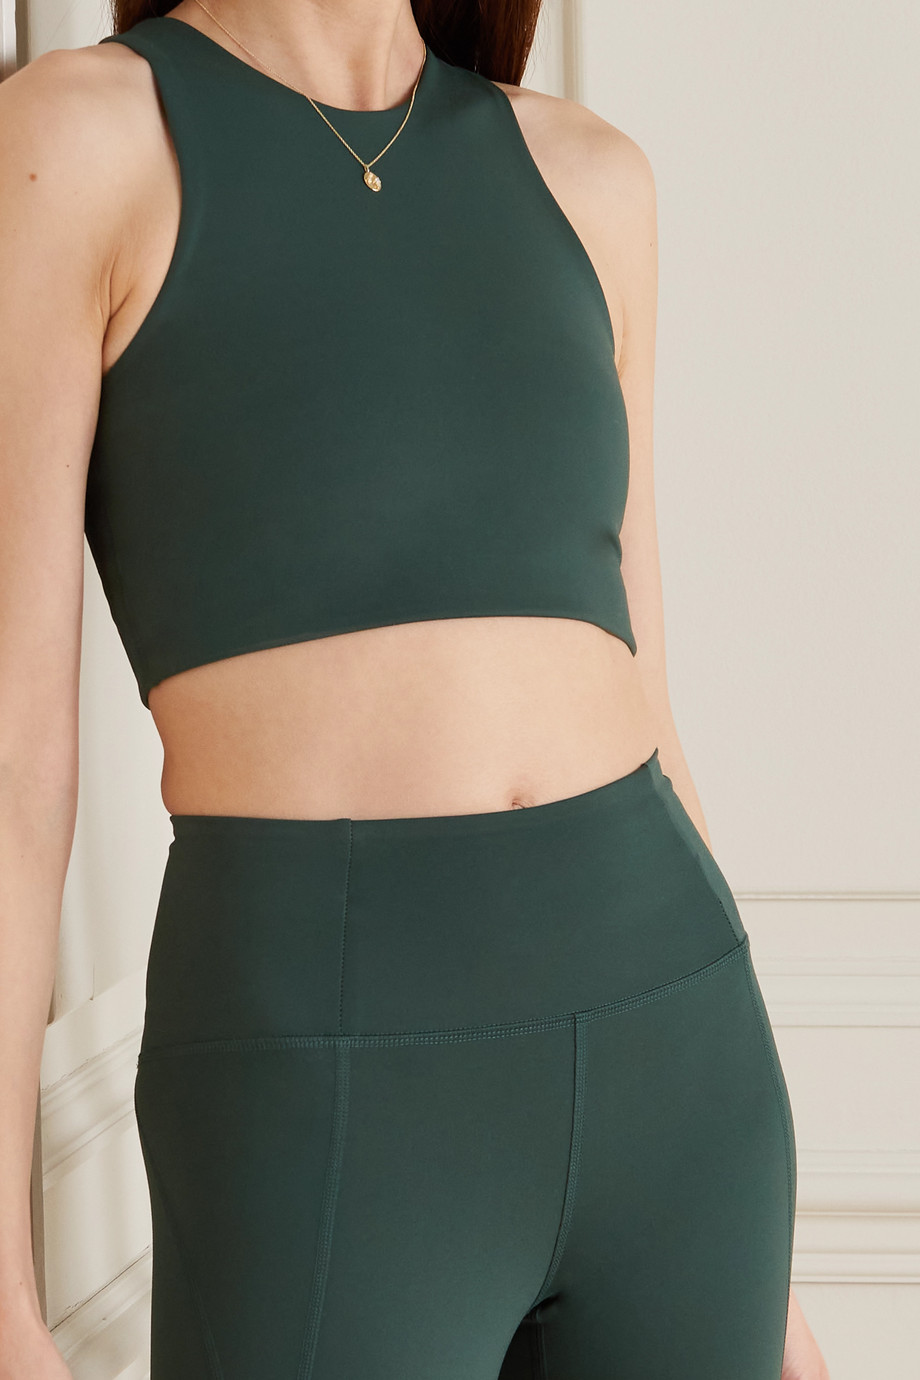 Girlfriend Collective Dylan recycled stretch sports bra